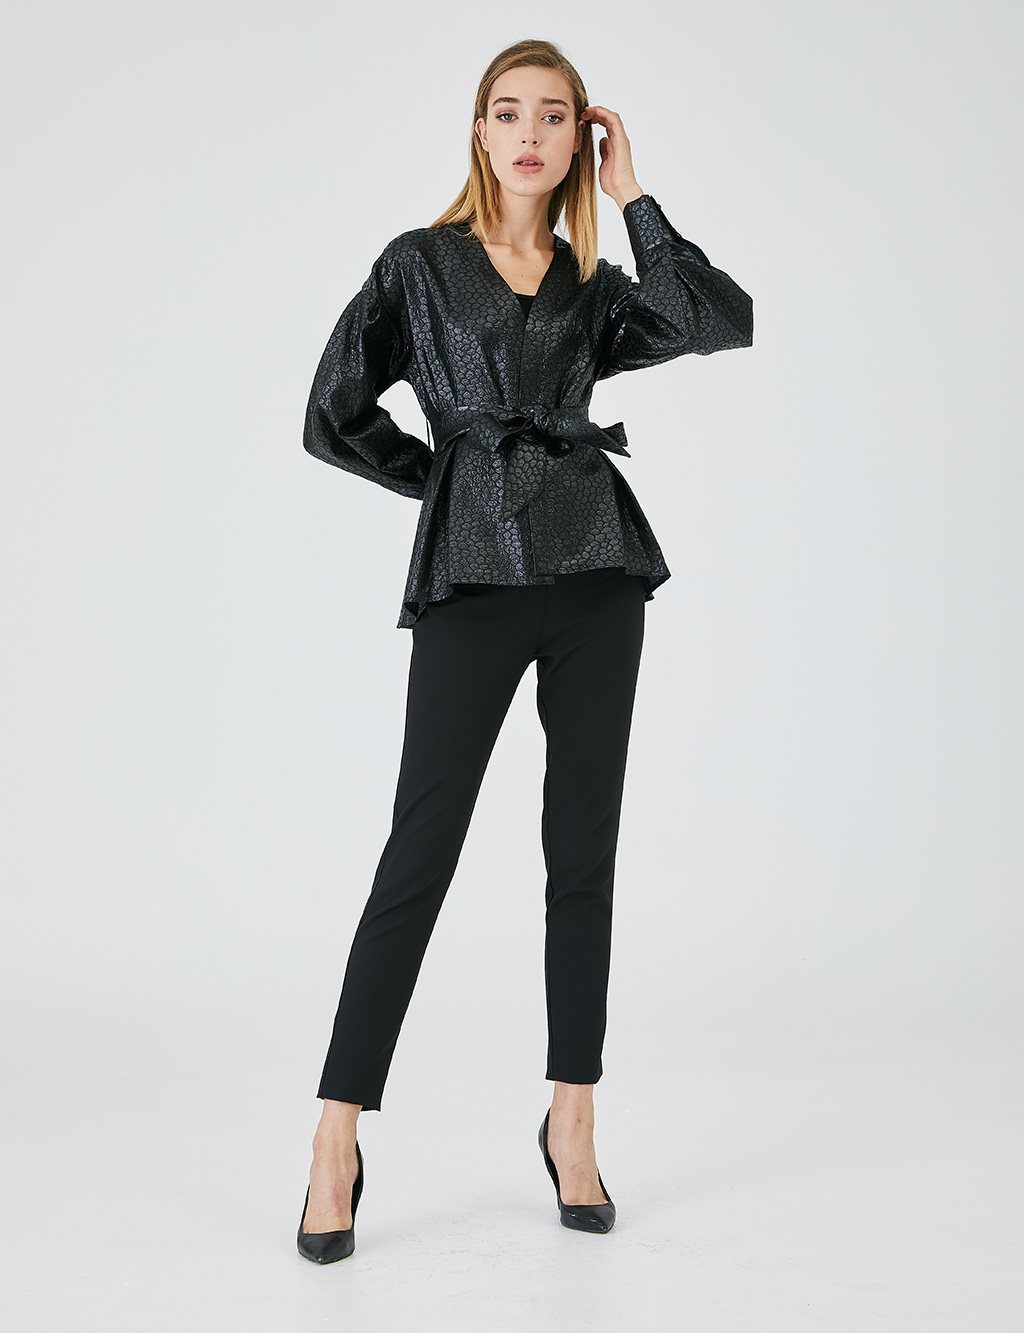 Jacquard Balloon Sleeve Jacket B20 13007 Black